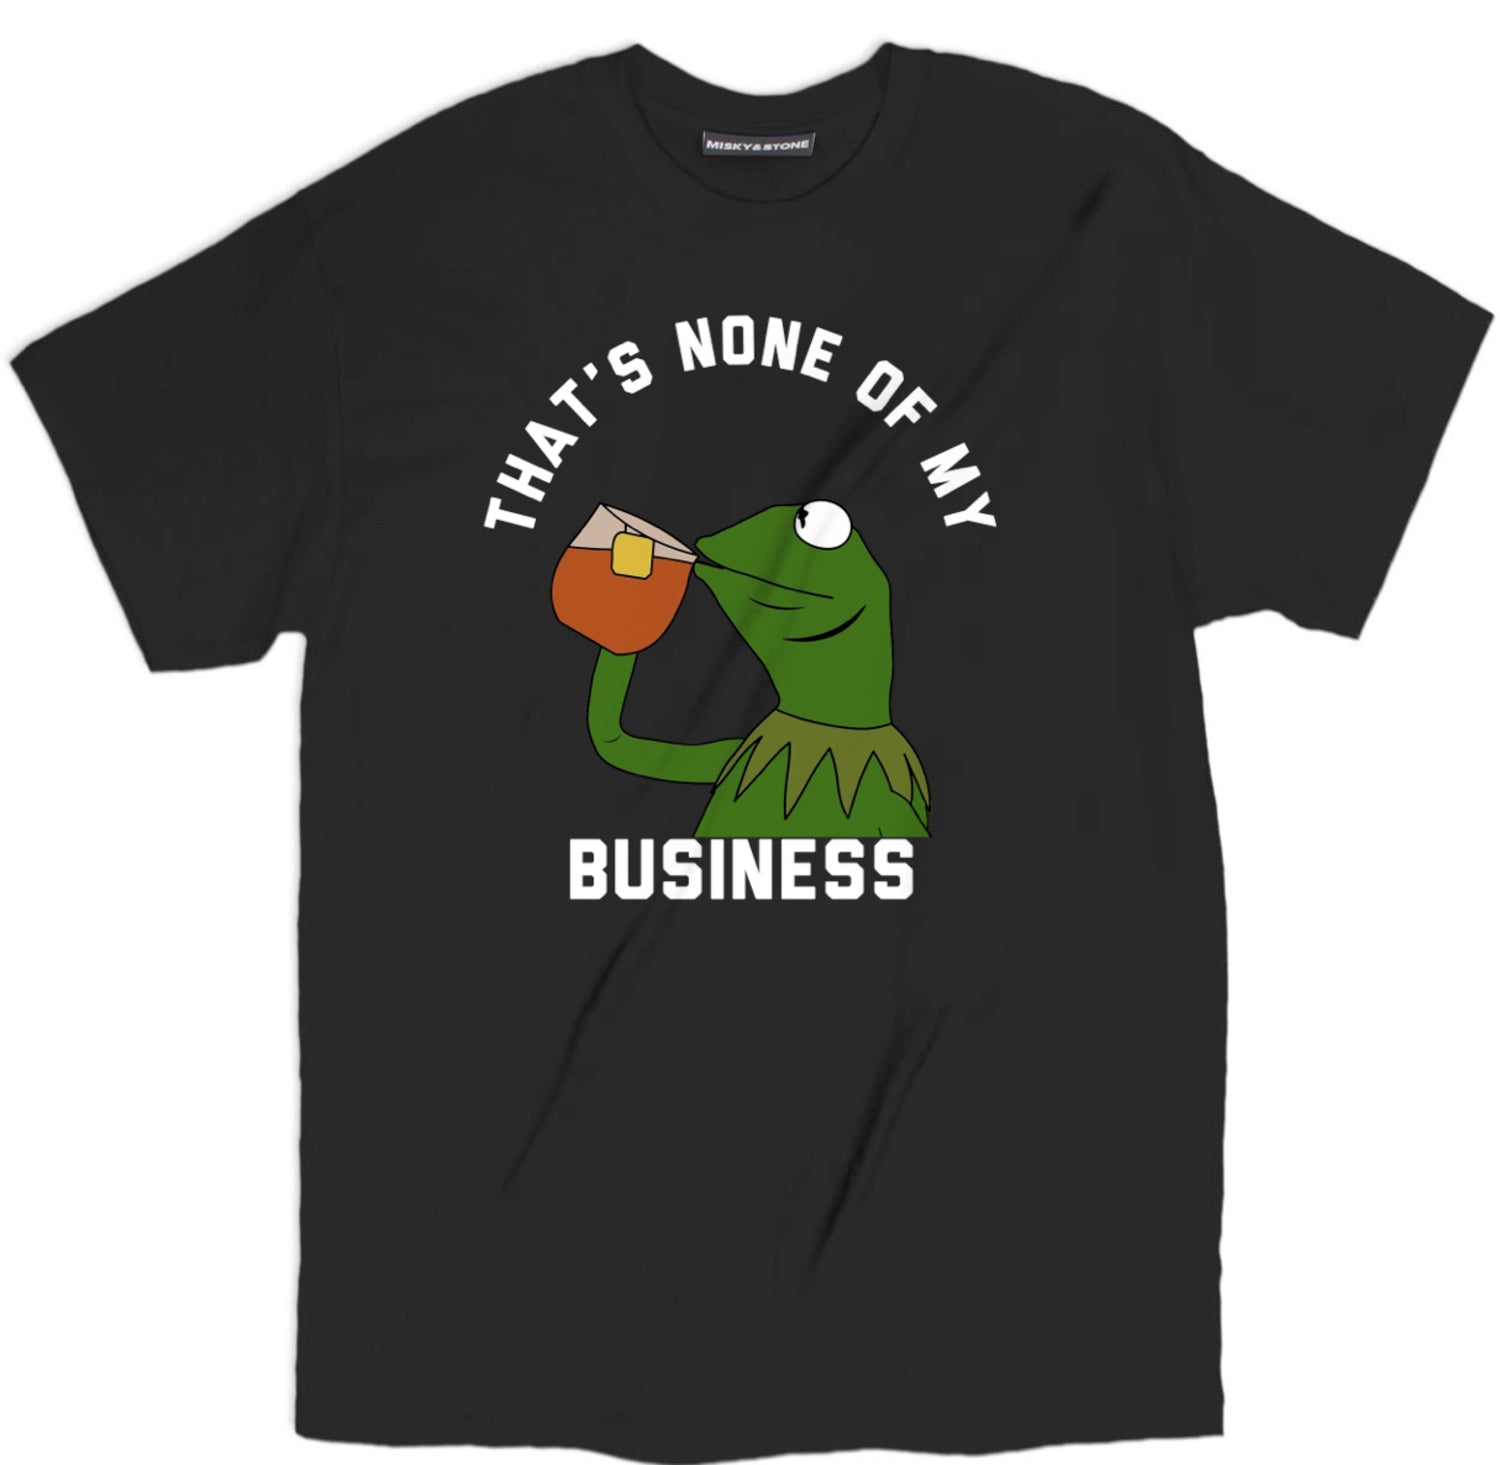 thats none of my business kermit tee, kermit the frog t shirt, funny kermit meme tee, funny meme shirts, funny meme tees, meme shirts, meme t shirts, shirts with memes